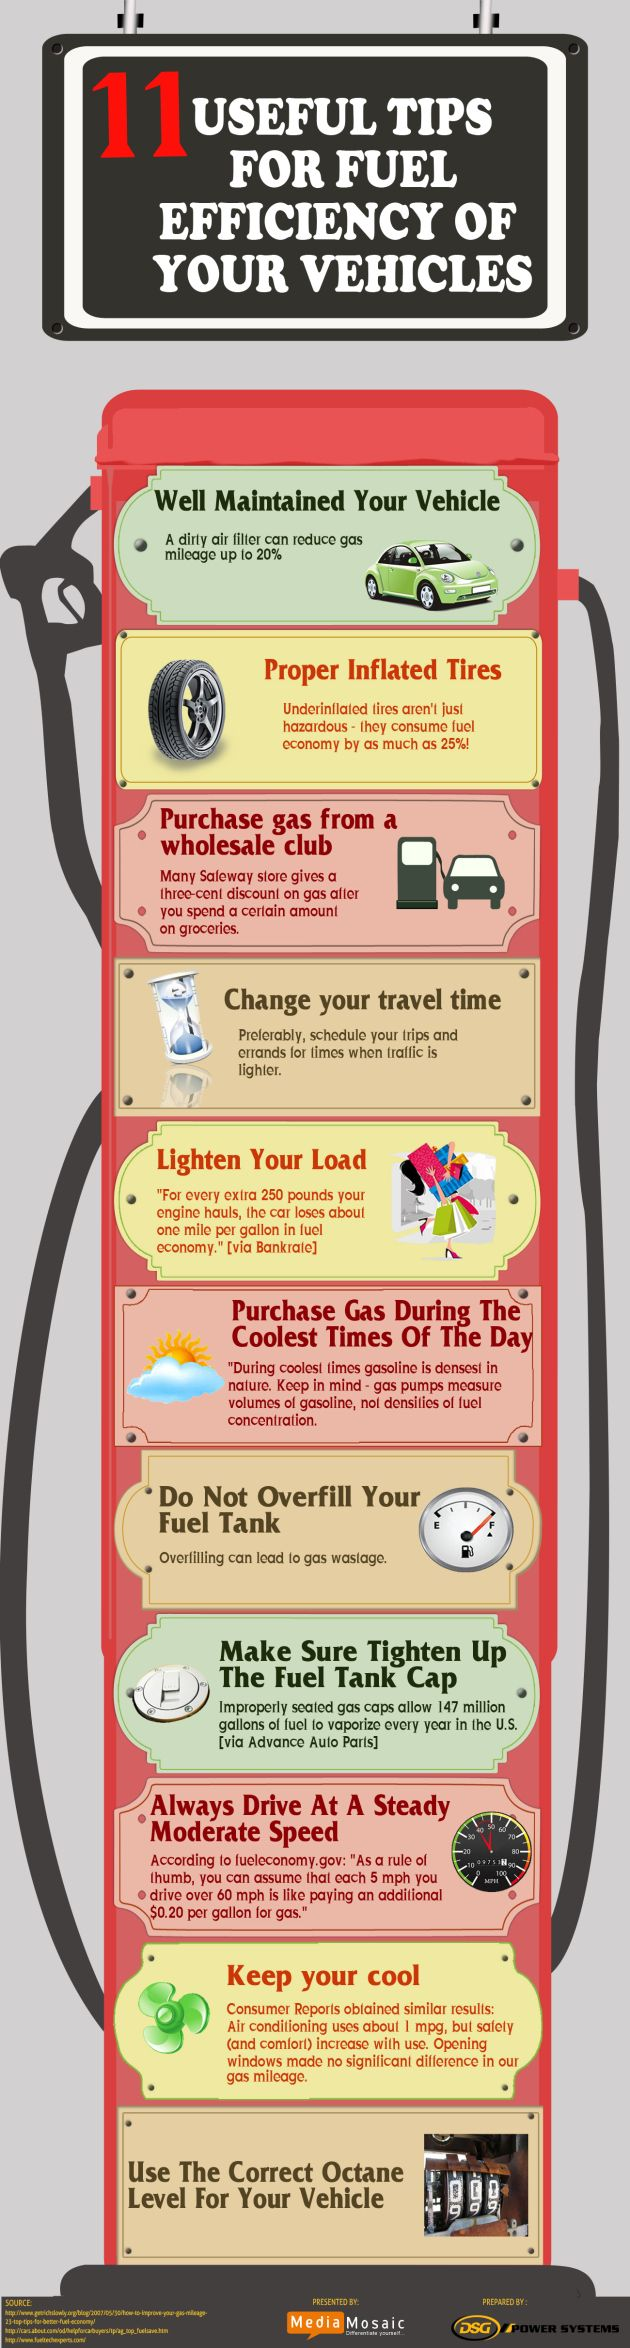 11 useful tips for fuel efficiency of your vehicals